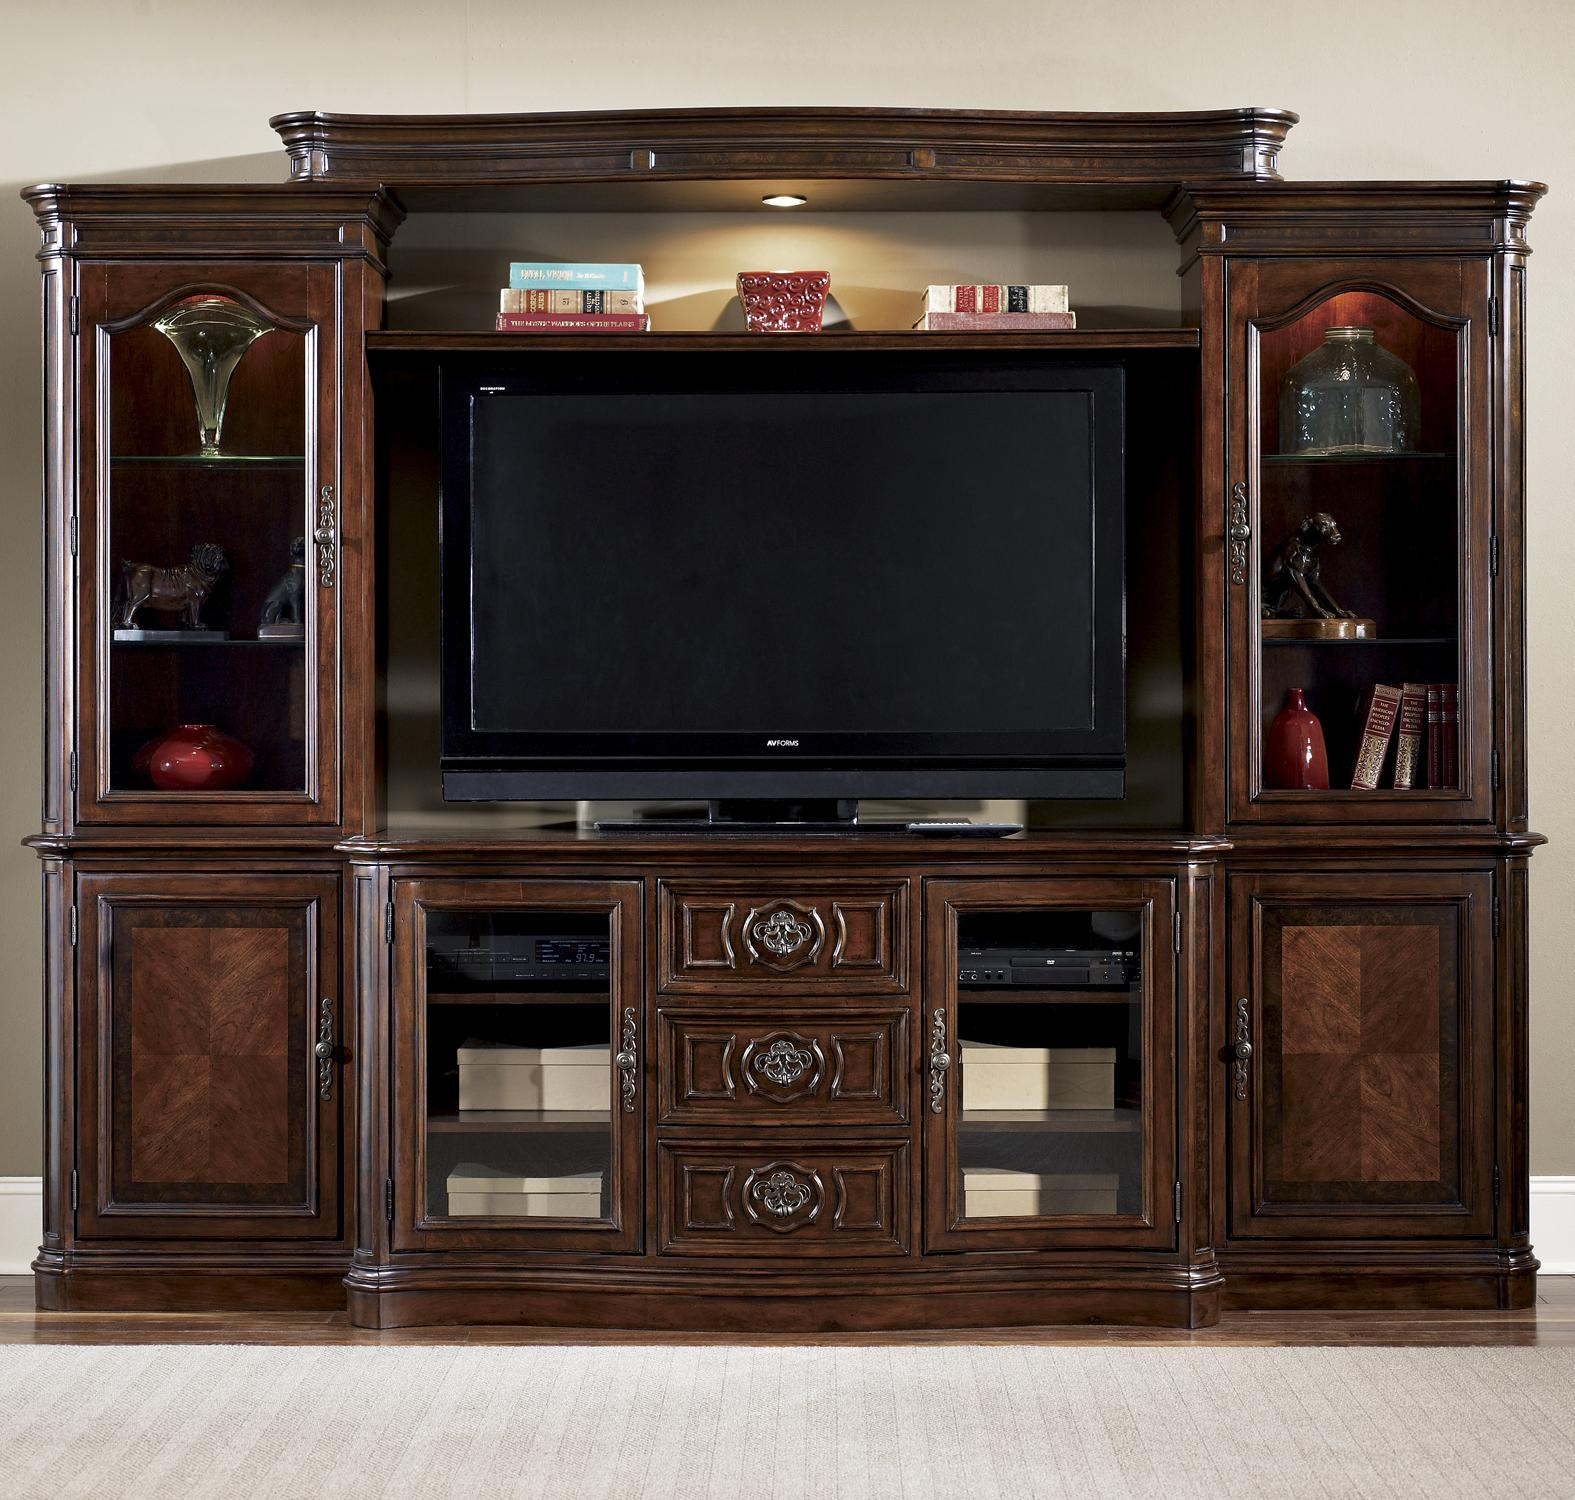 Tell You How To Build An Entertainment Wall Unit Share